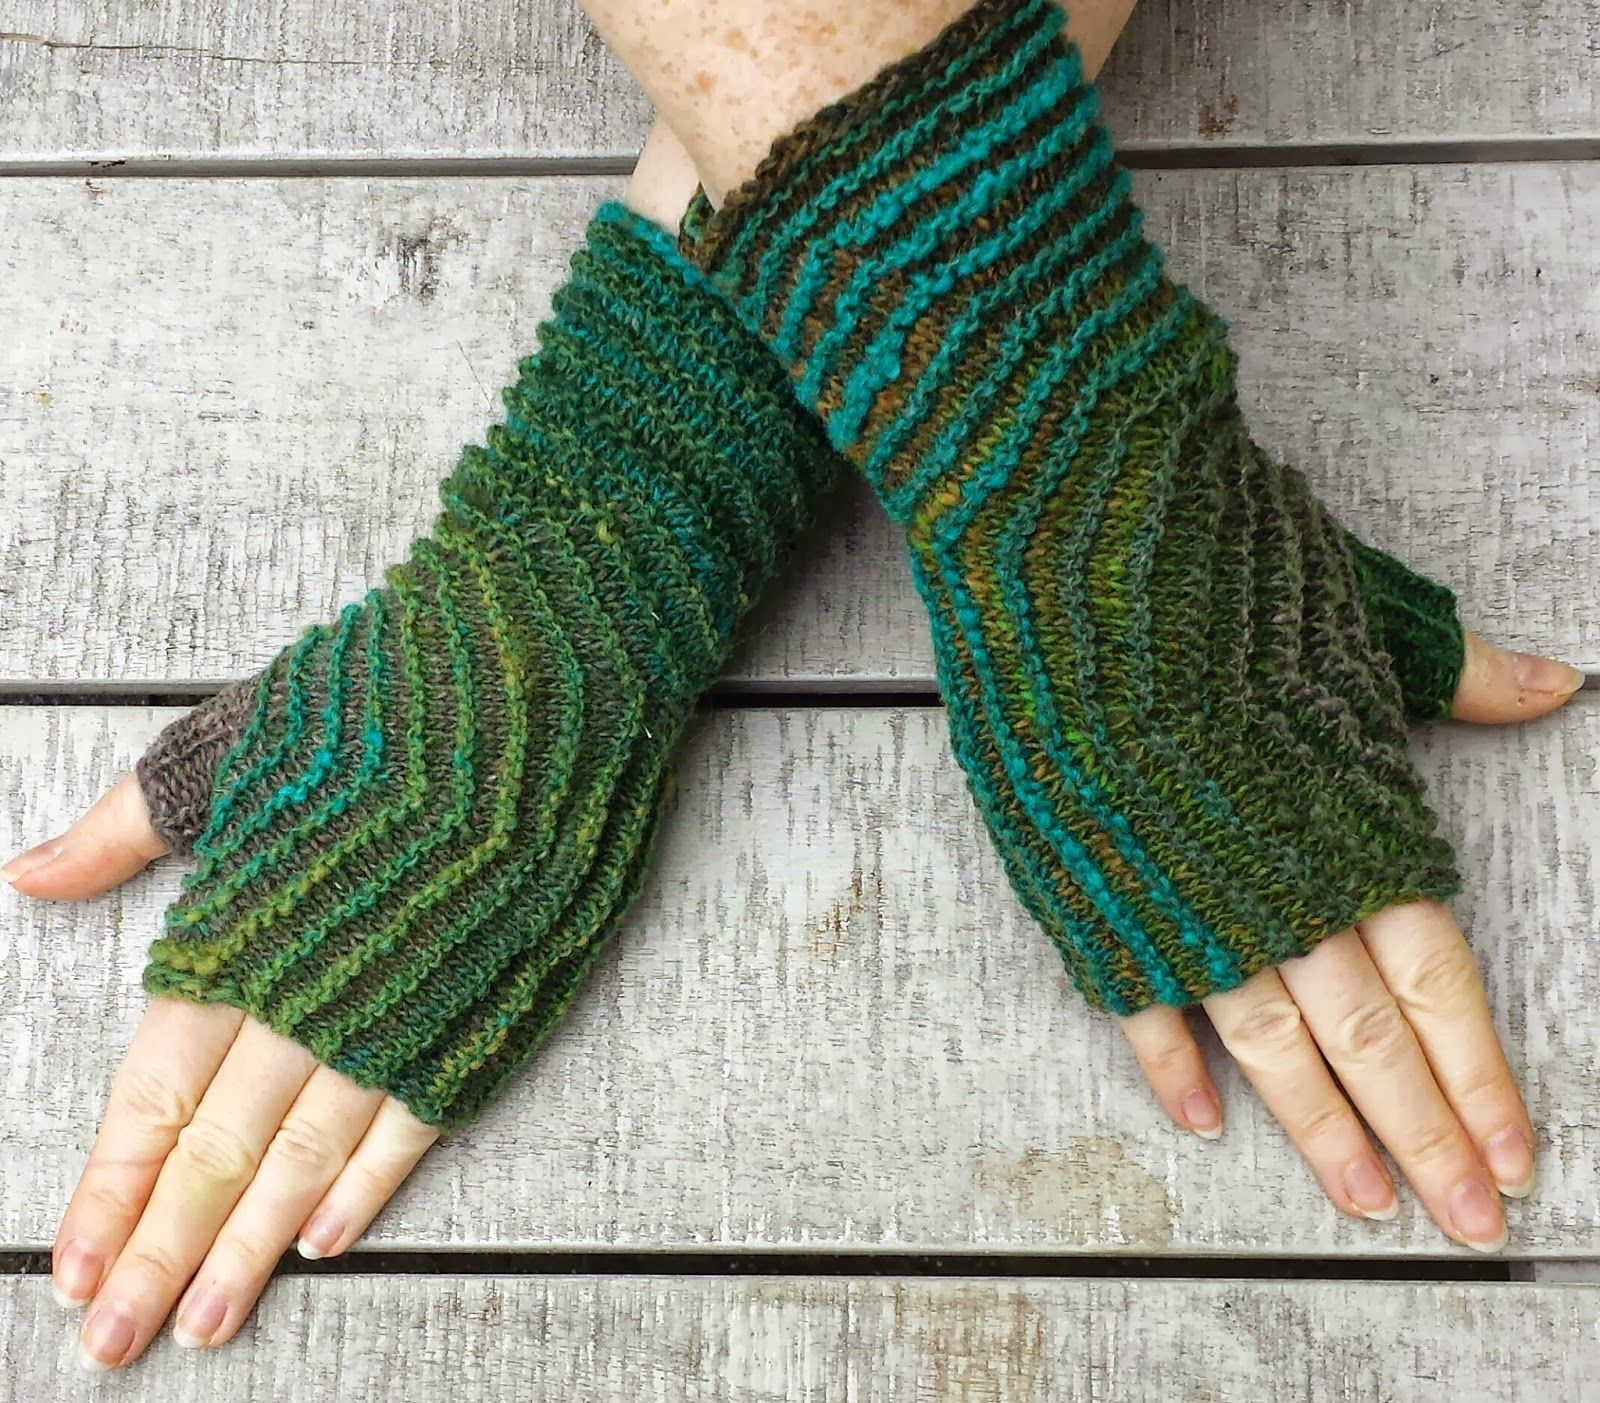 Freen Knitting Pattern: Hexagon Mitts | Crafting | Pinterest | Knit ...